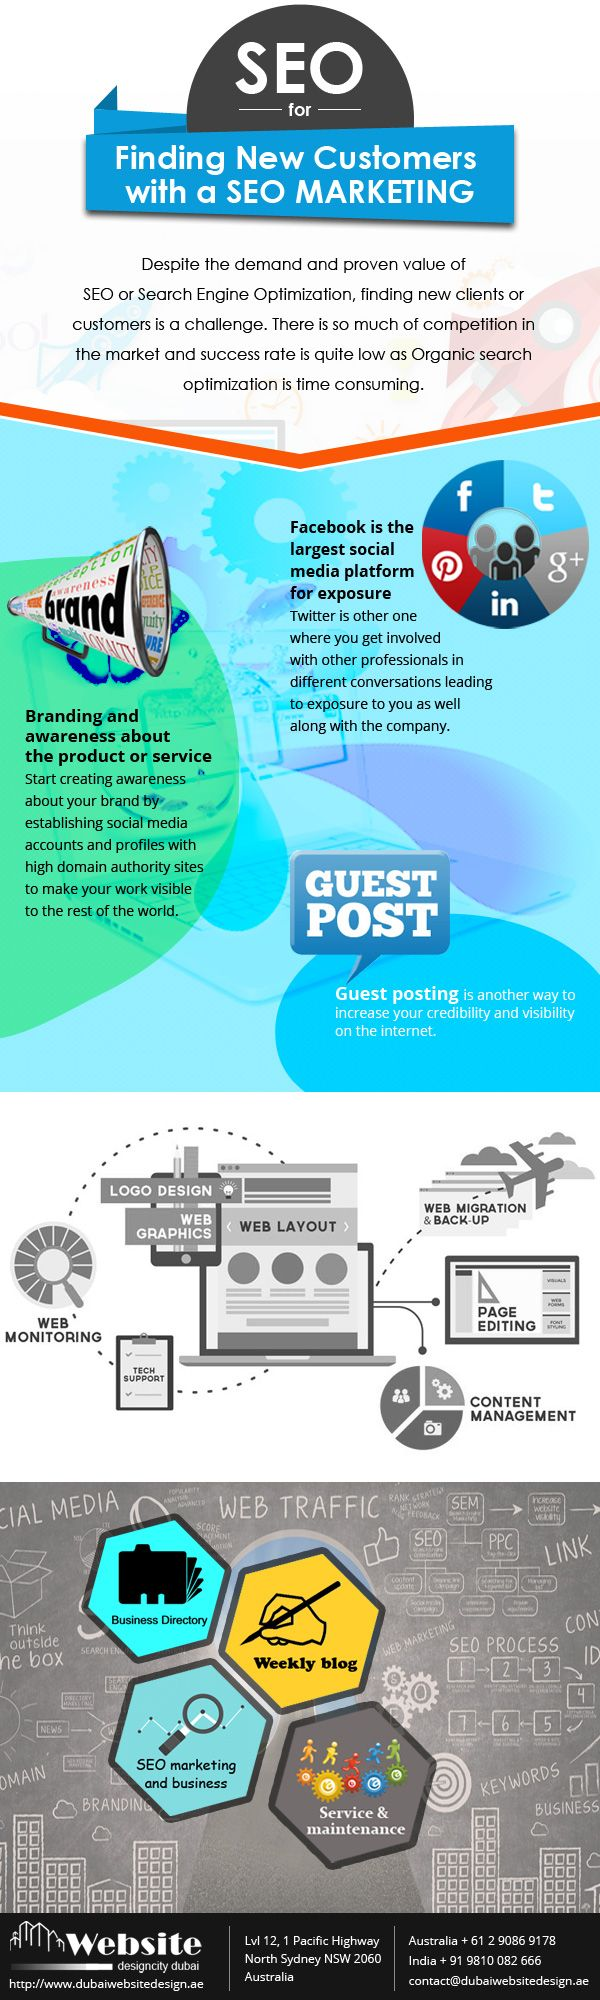 Finding New Customers with a SEO Marketing http://www.dubaiwebsitedesign.ae/blog/finding-new-customers-with-a-seo-marketing-infographic/